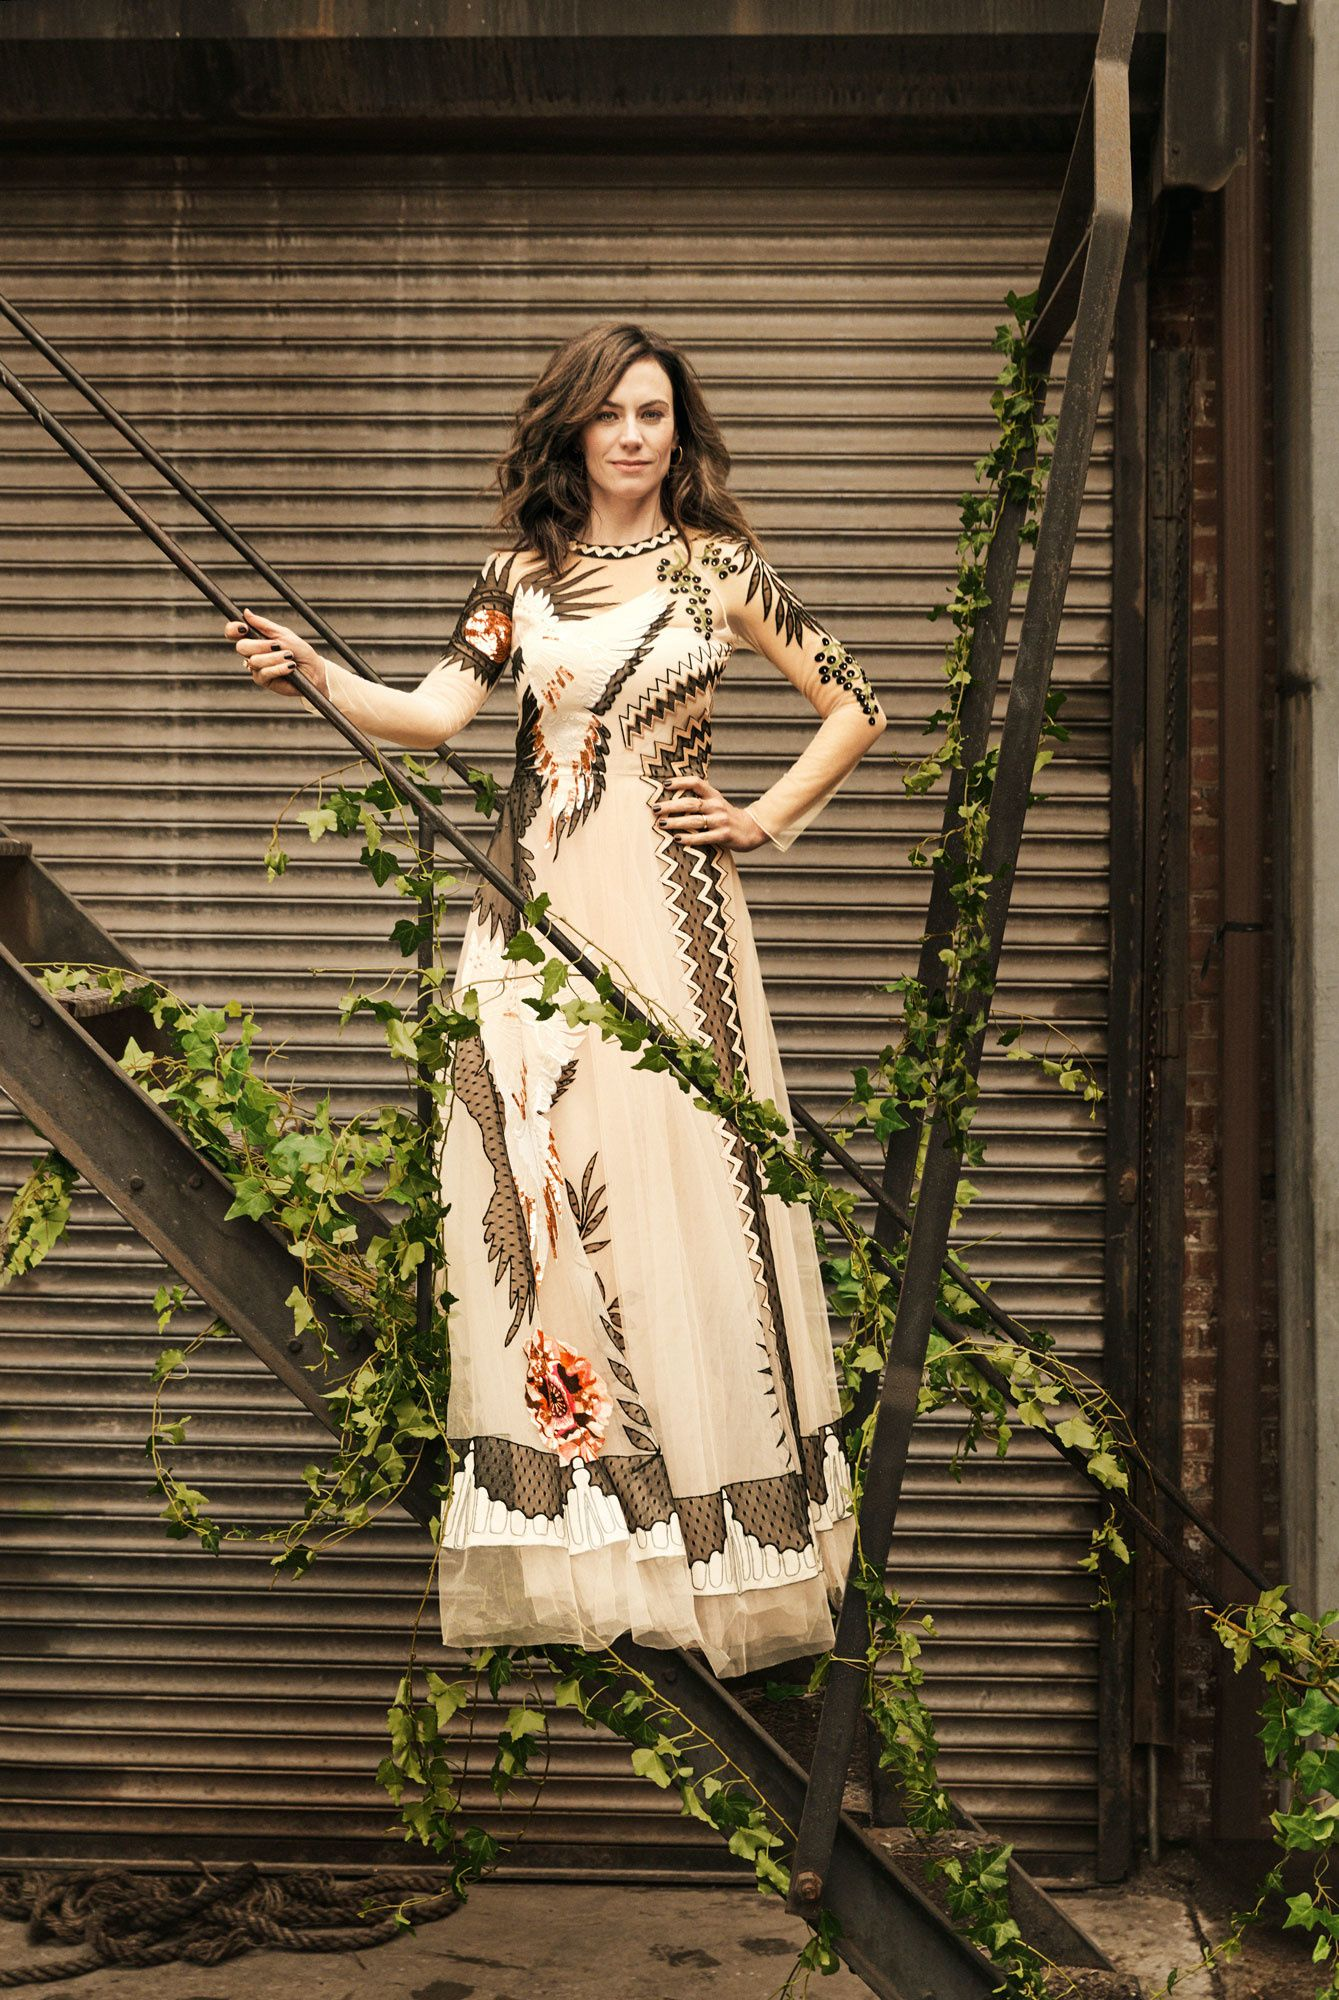 Maggie Siff standing on a fire escape in a floral dress.